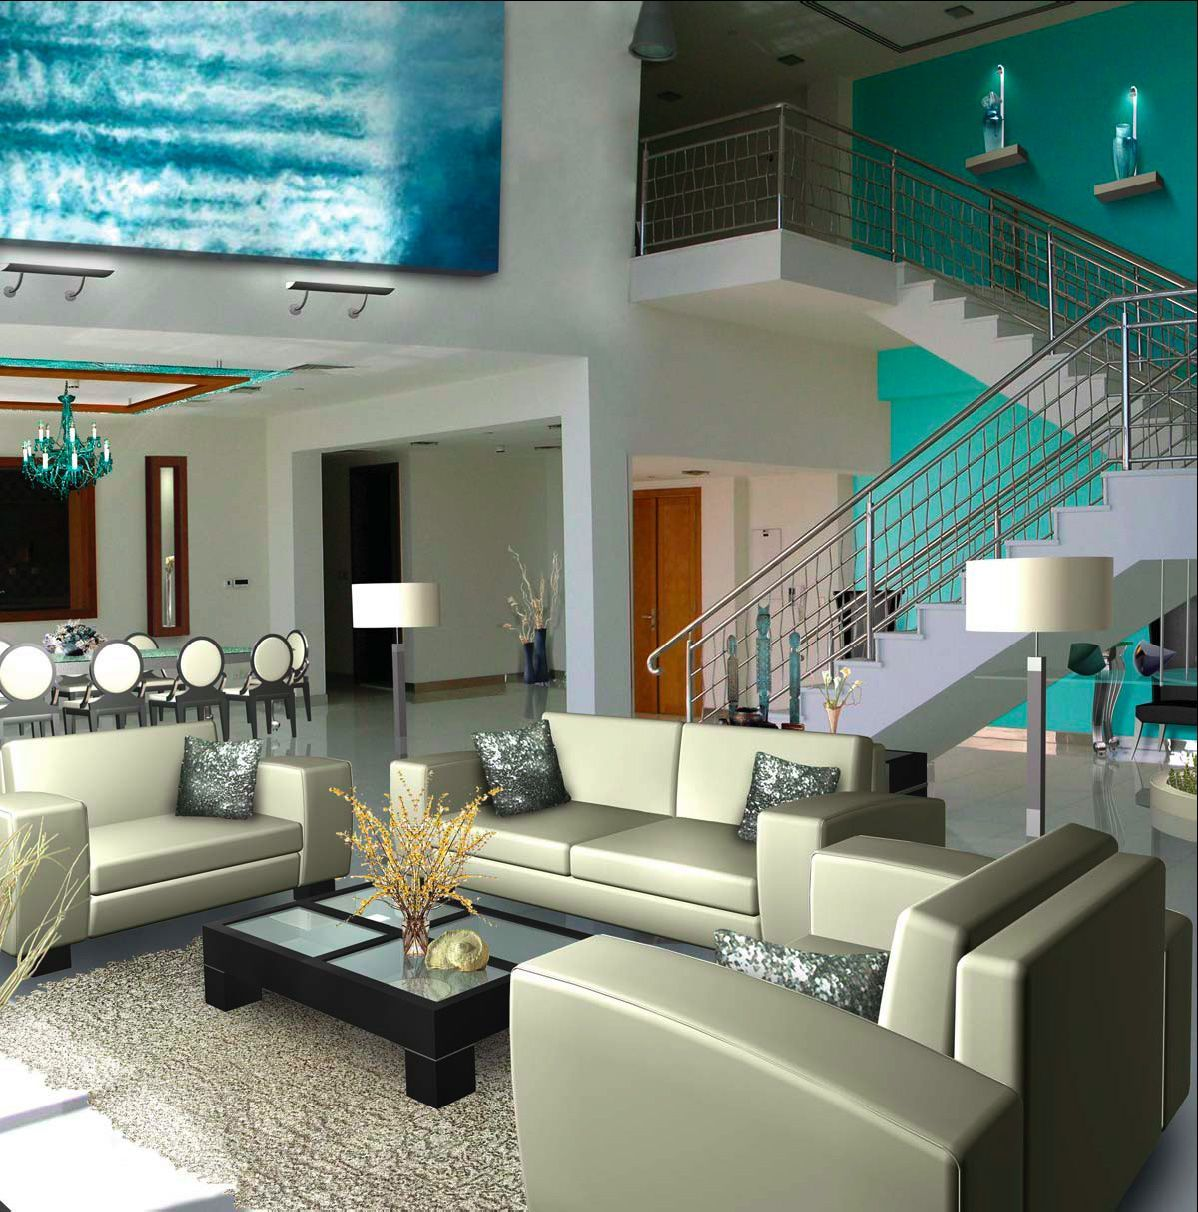 Best Modern Interior Decorating   Interior Design   Implicity Is The  Distinguished Mark Of Modern Interior Décor. We Will Offer You Some  Essential Tips On ...